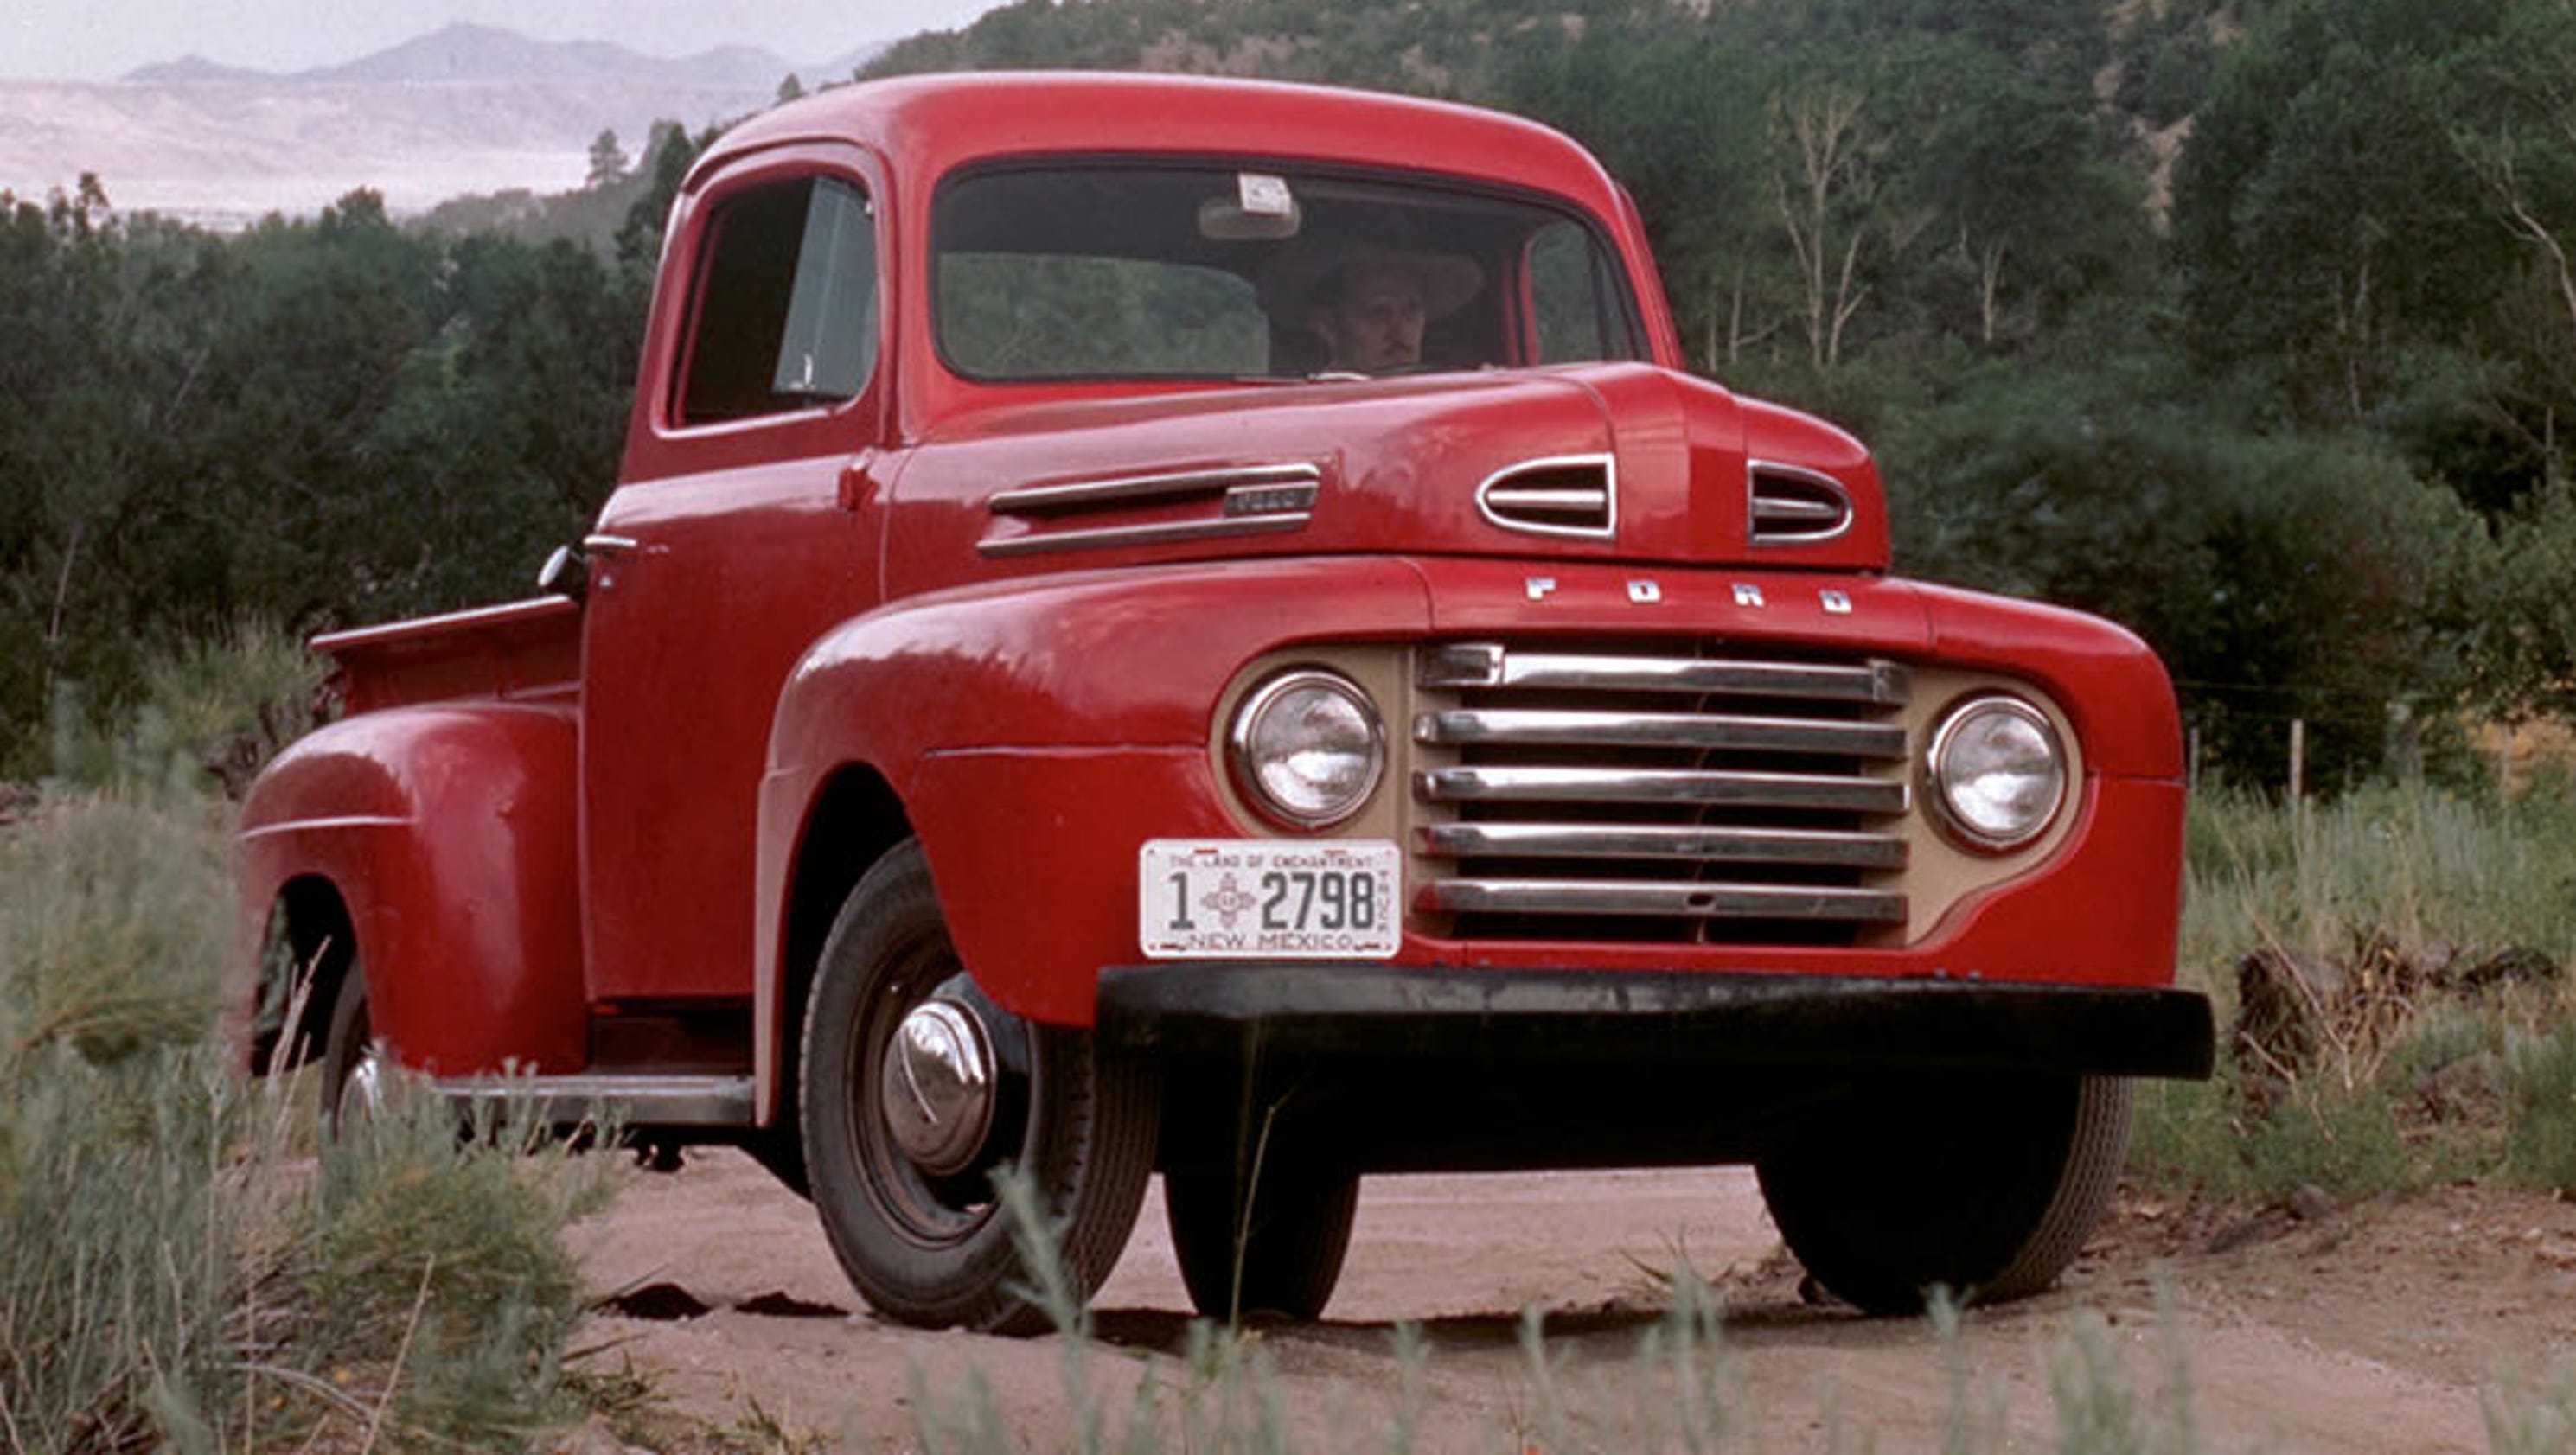 Ford celebrates the 100th anniversary of its pickup trucks